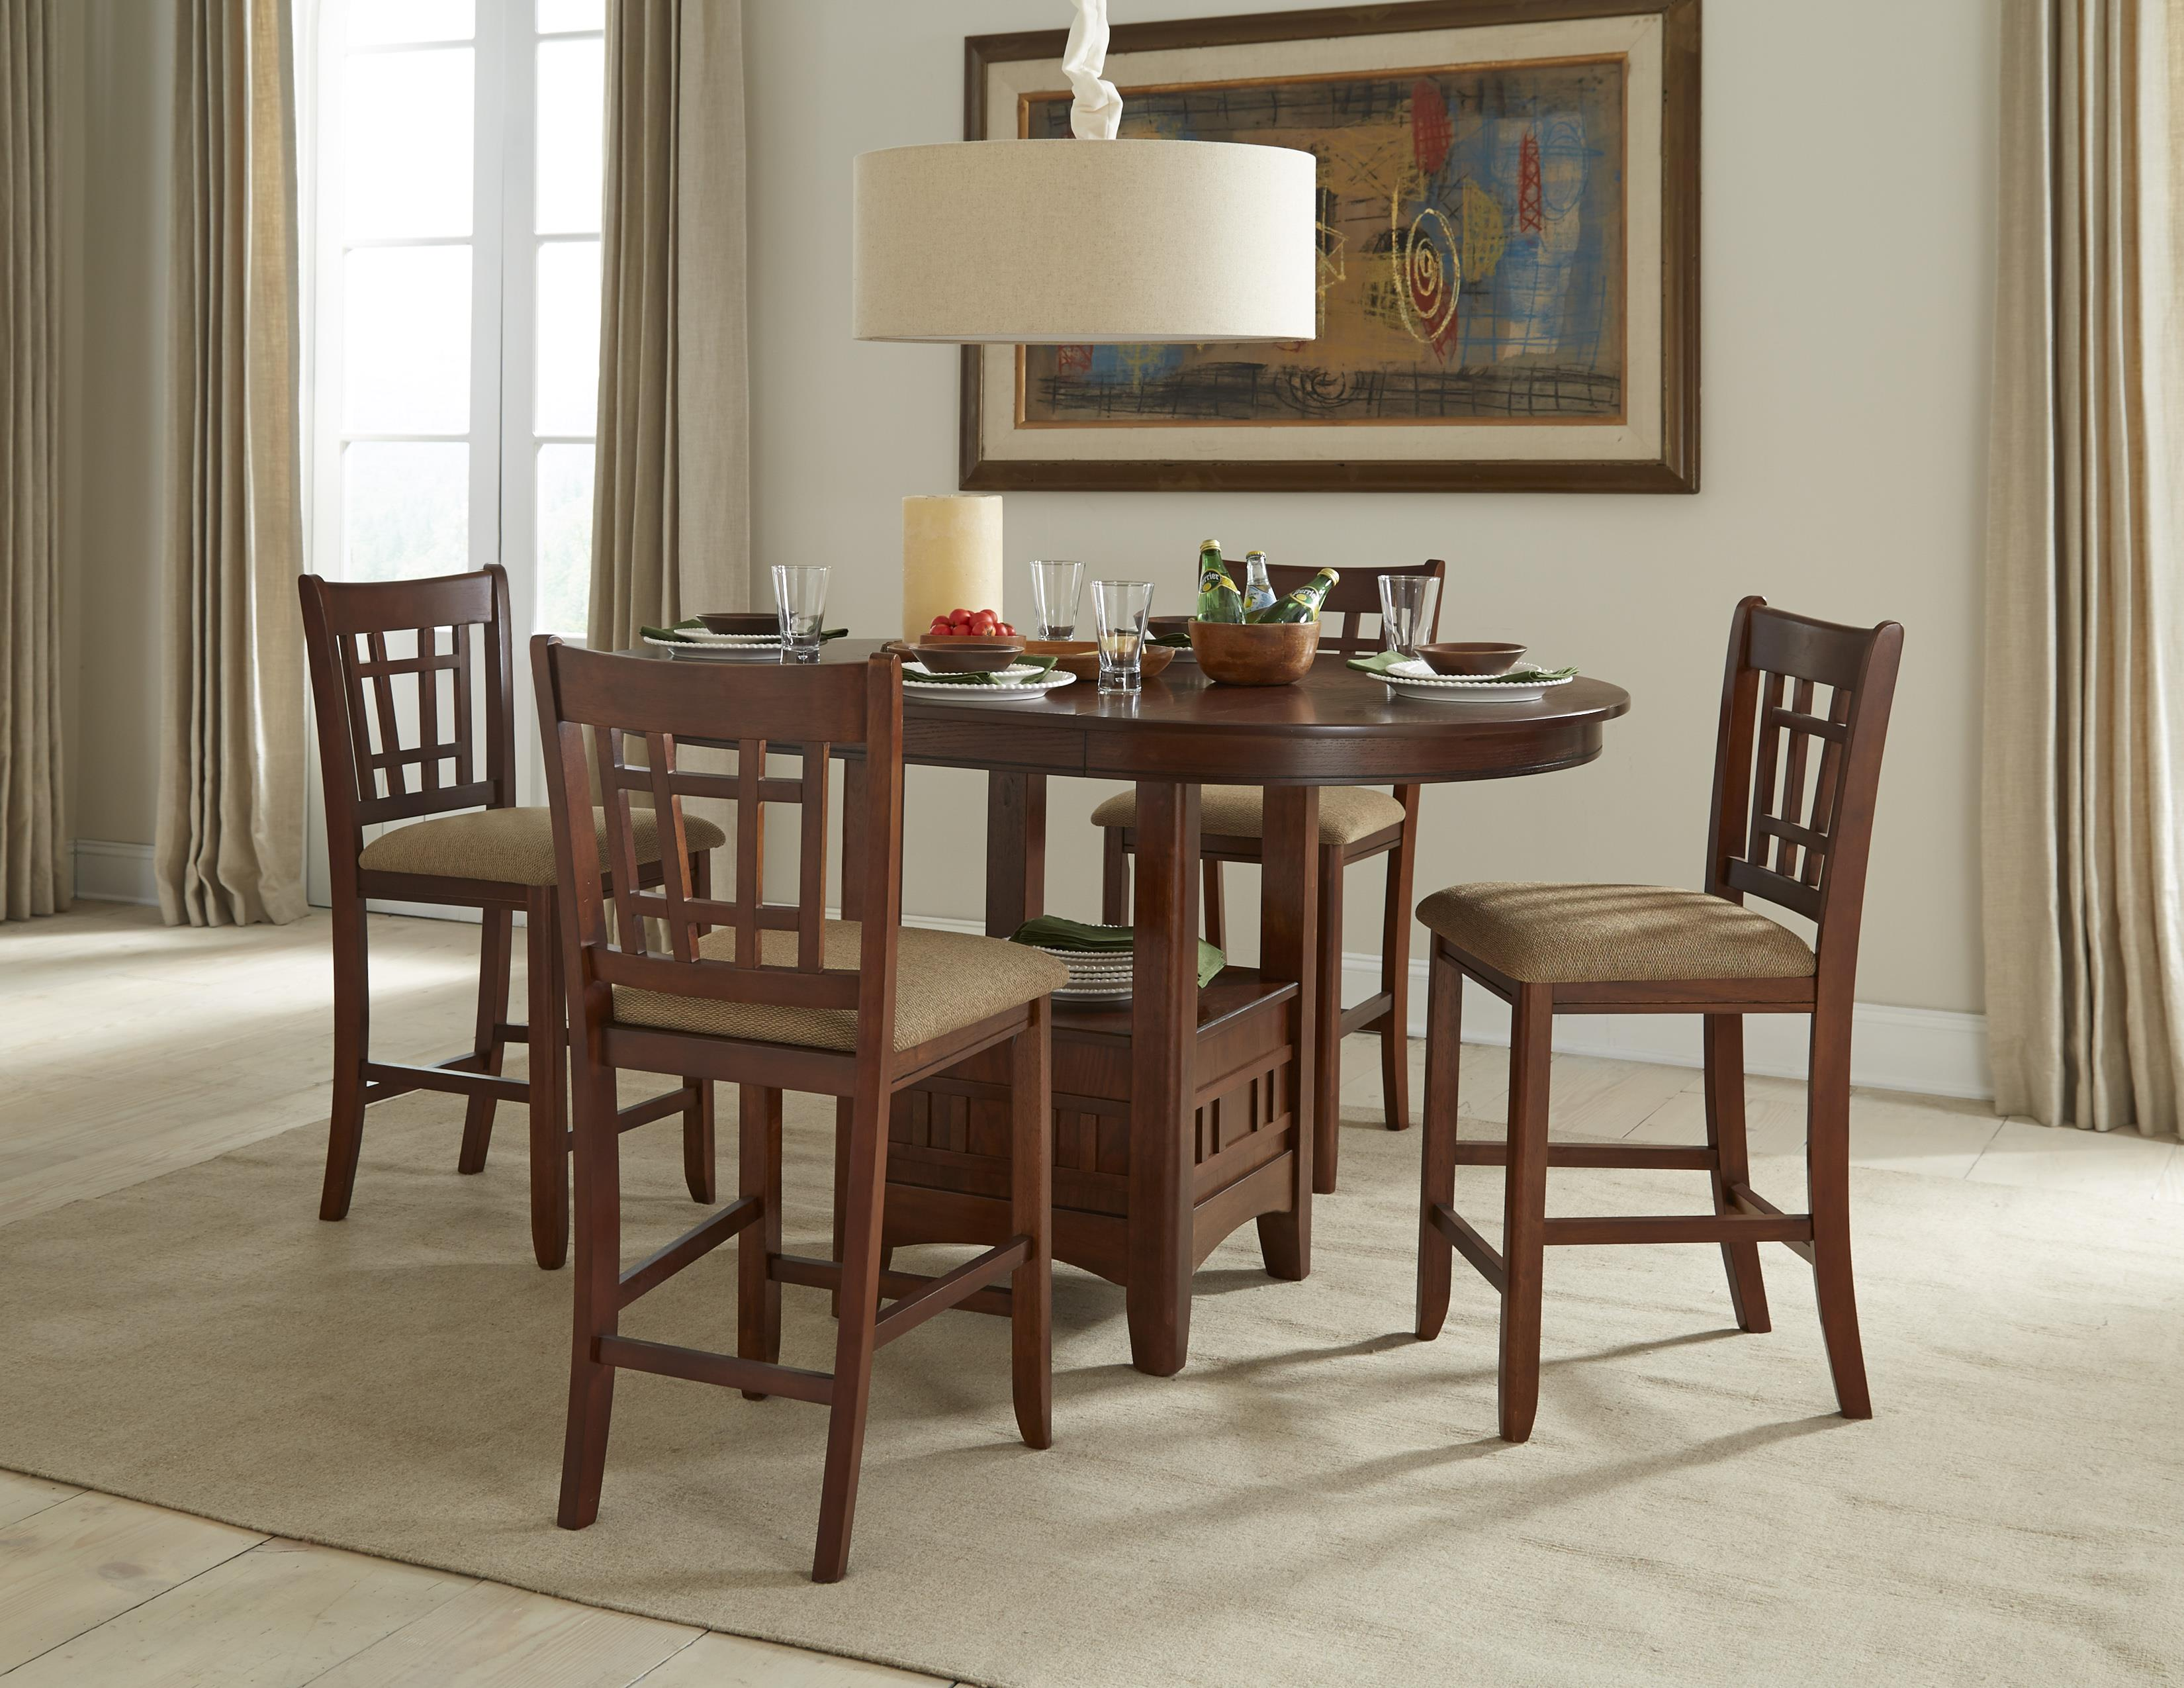 intercon mission casuals pedestal gathering table with leaf wayside furniture pub table